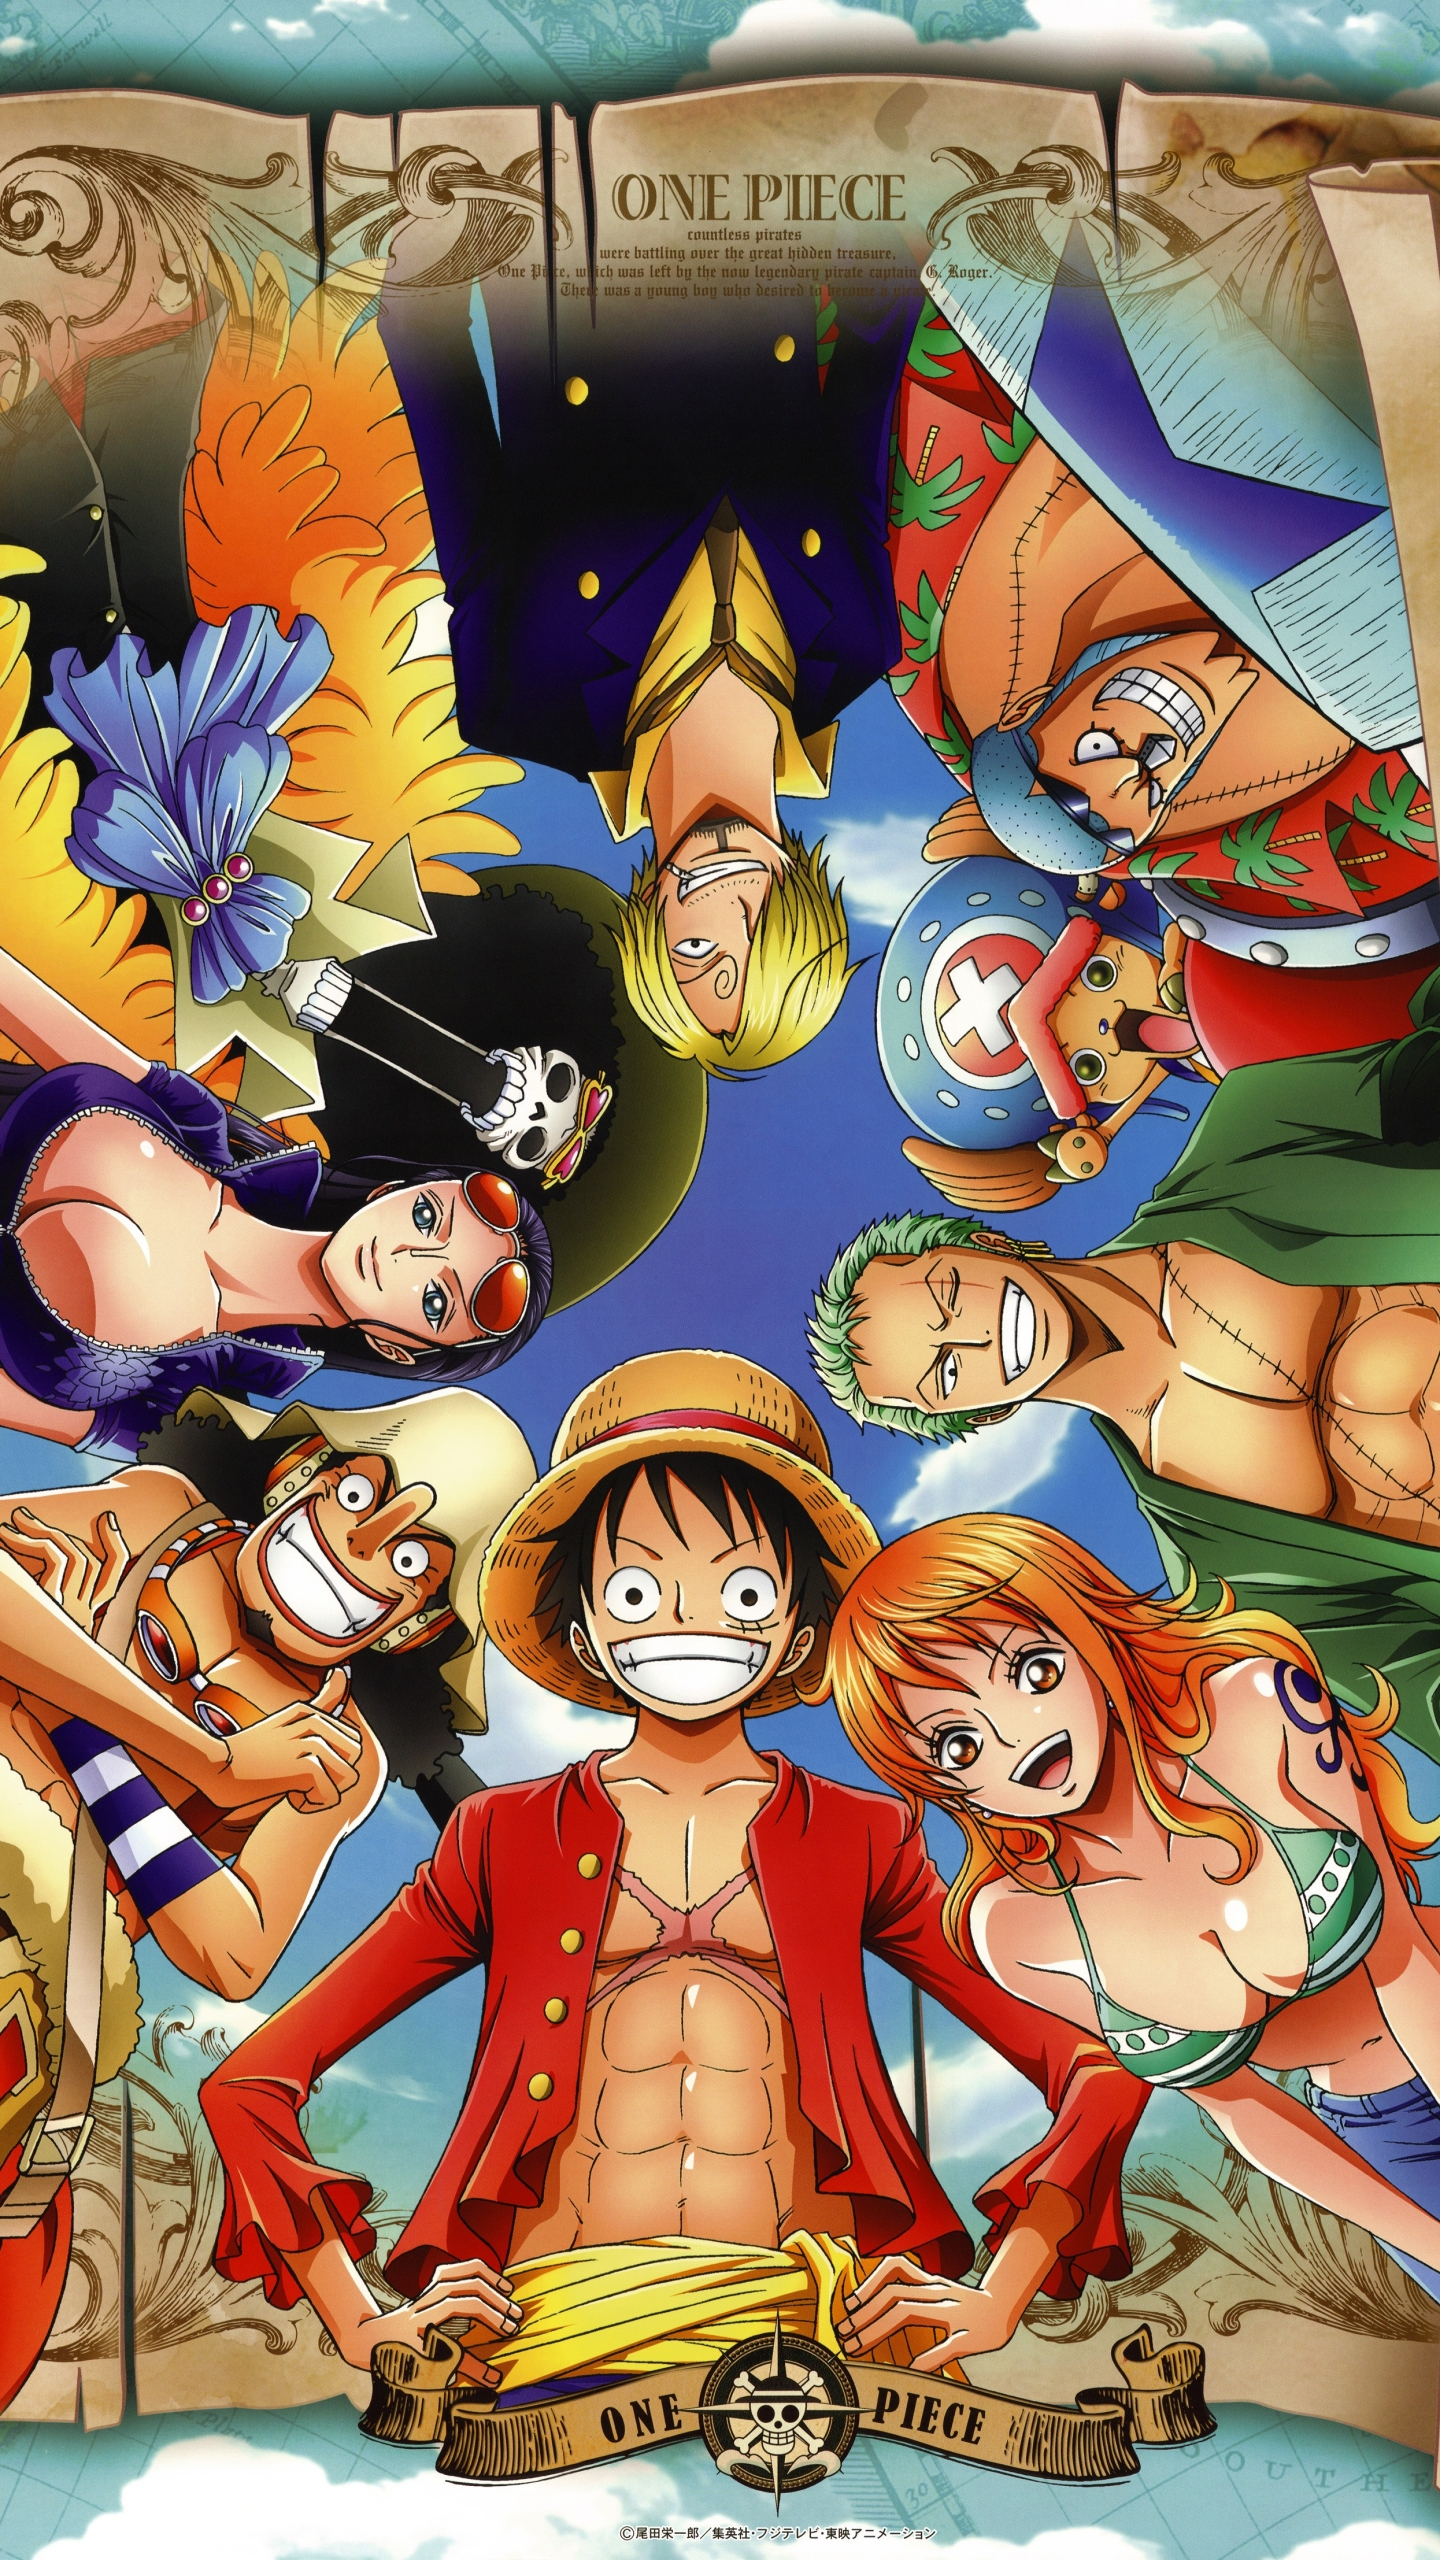 Anime One Piece 1080x1920 Wallpaper Id 656767 Mobile Abyss